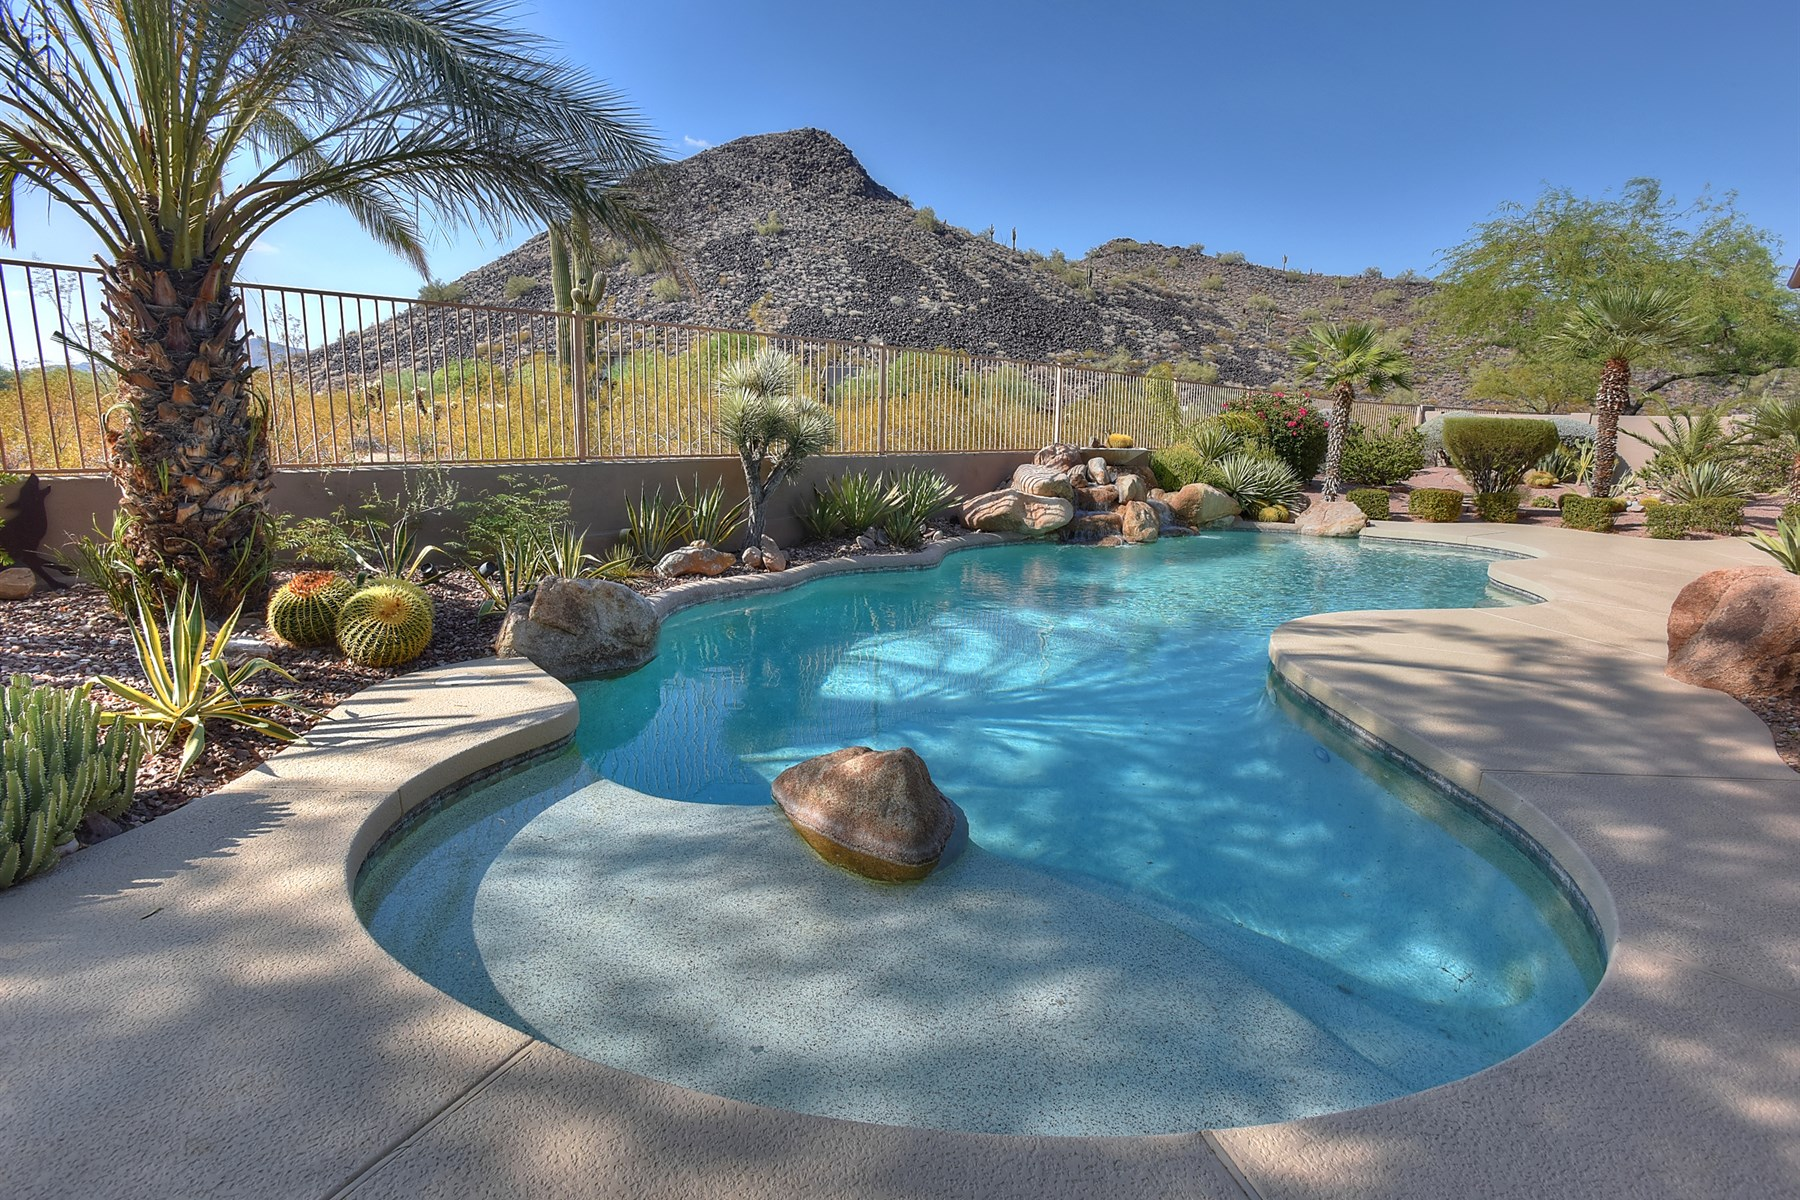 Property For Sale at An executive home on a 1.15 acre Lot in a prestigious, gated community.